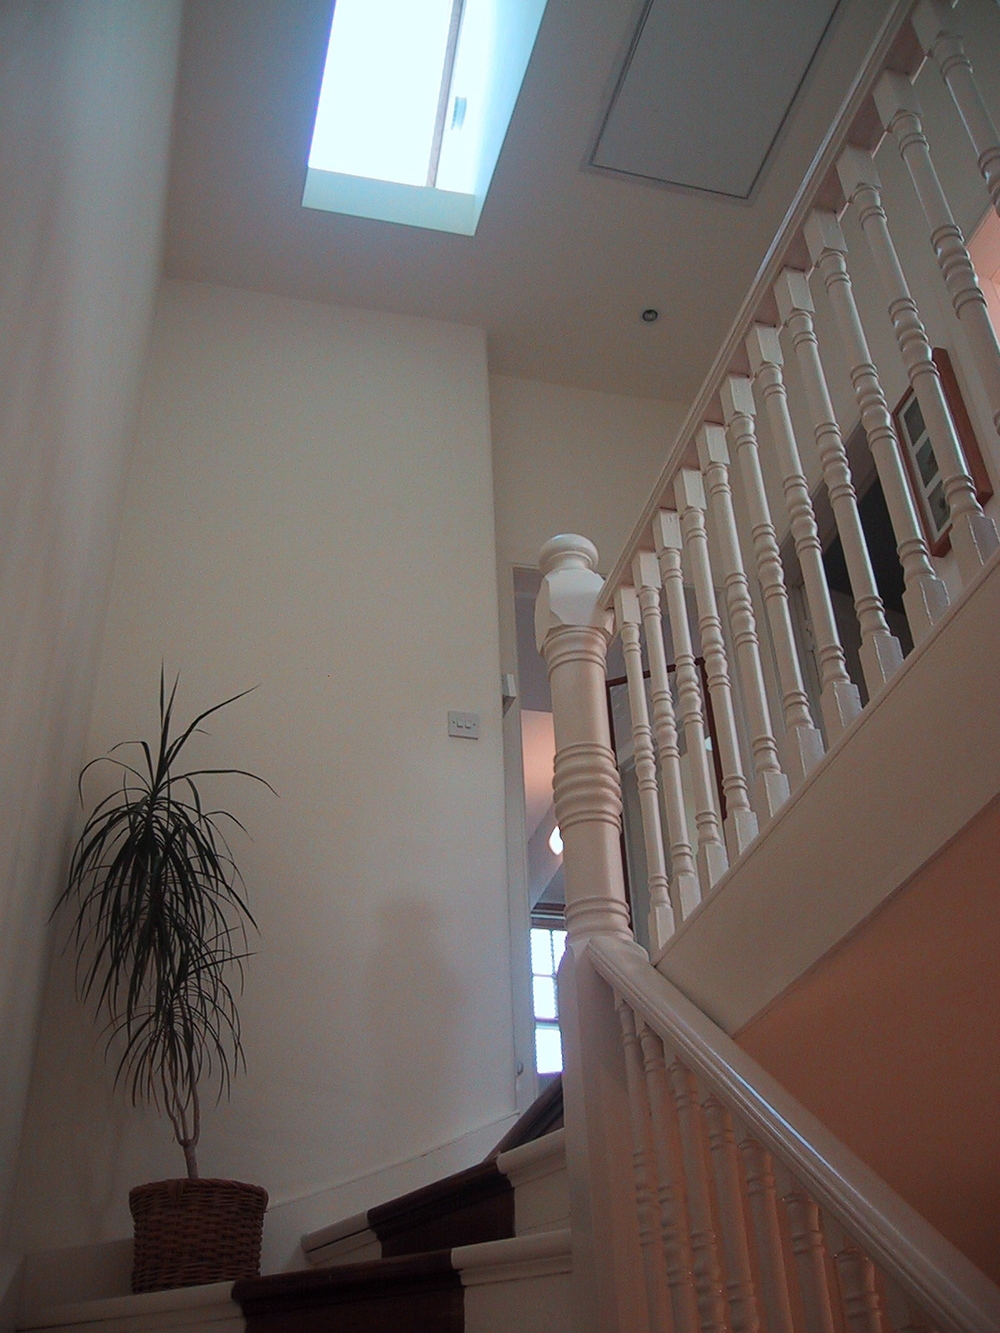 A new light-well was a simple and cost effective way of improving the daylighting within this Edwardian villa